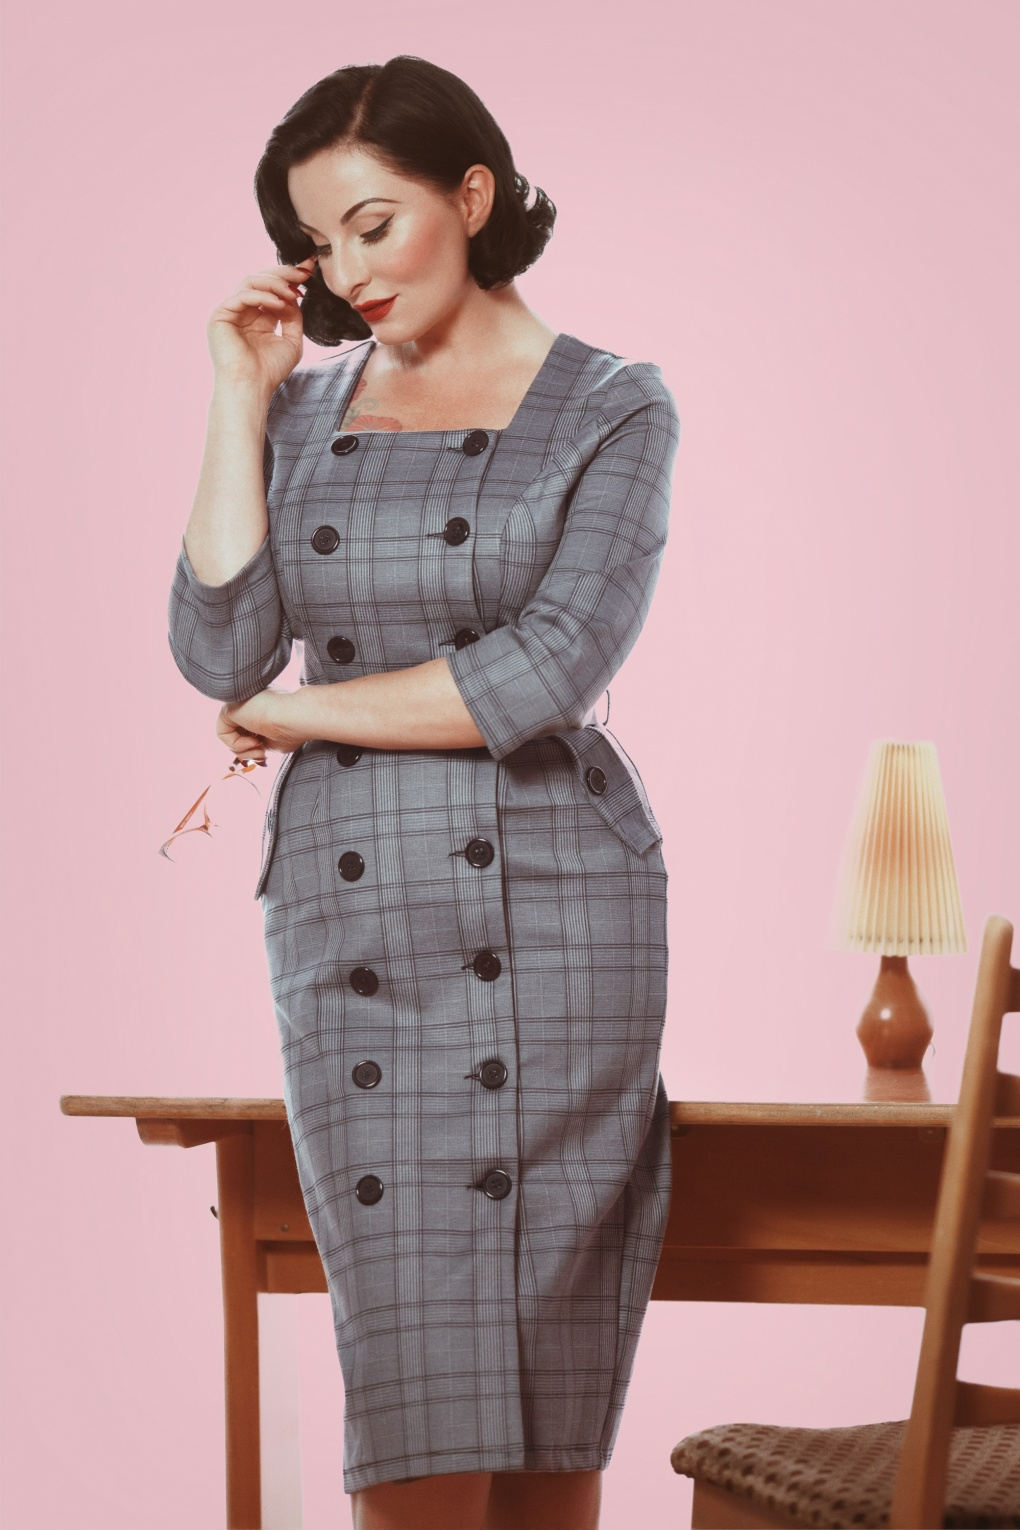 Rockabilly Dresses | Rockabilly Clothing | Viva Las Vegas 50s Jasmine Check Pencil Dress in Grey £62.97 AT vintagedancer.com